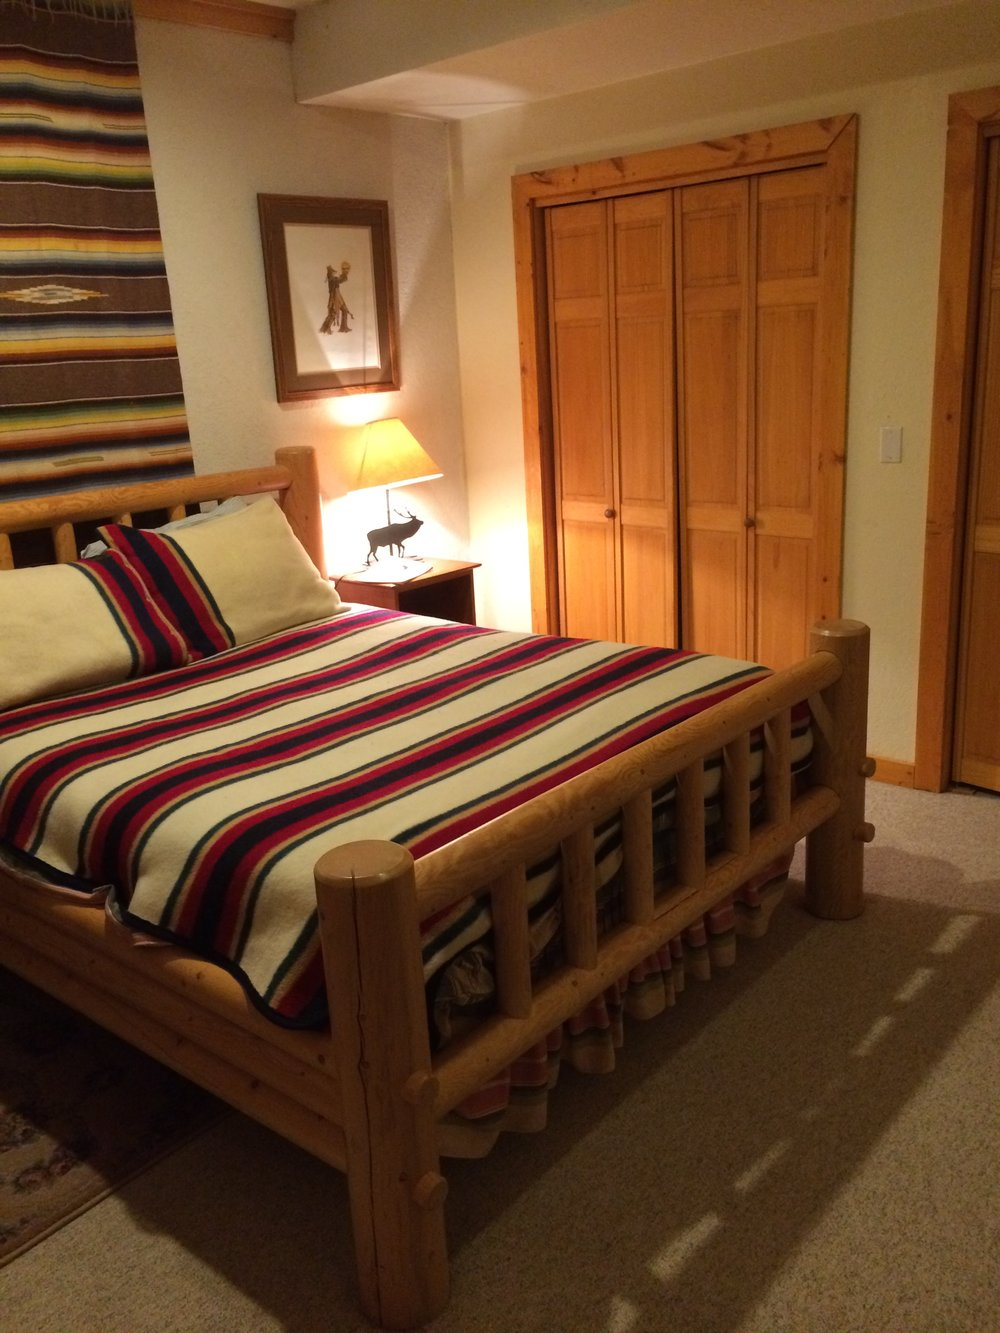 Shared Private Queen Bed room